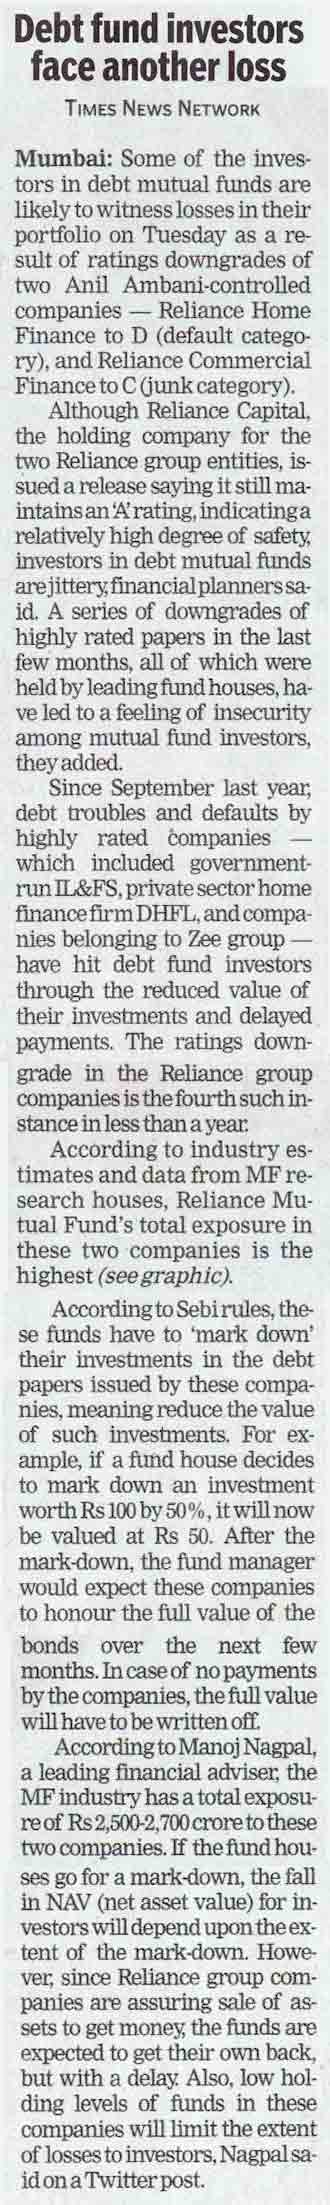 Debt fund investors face another loss